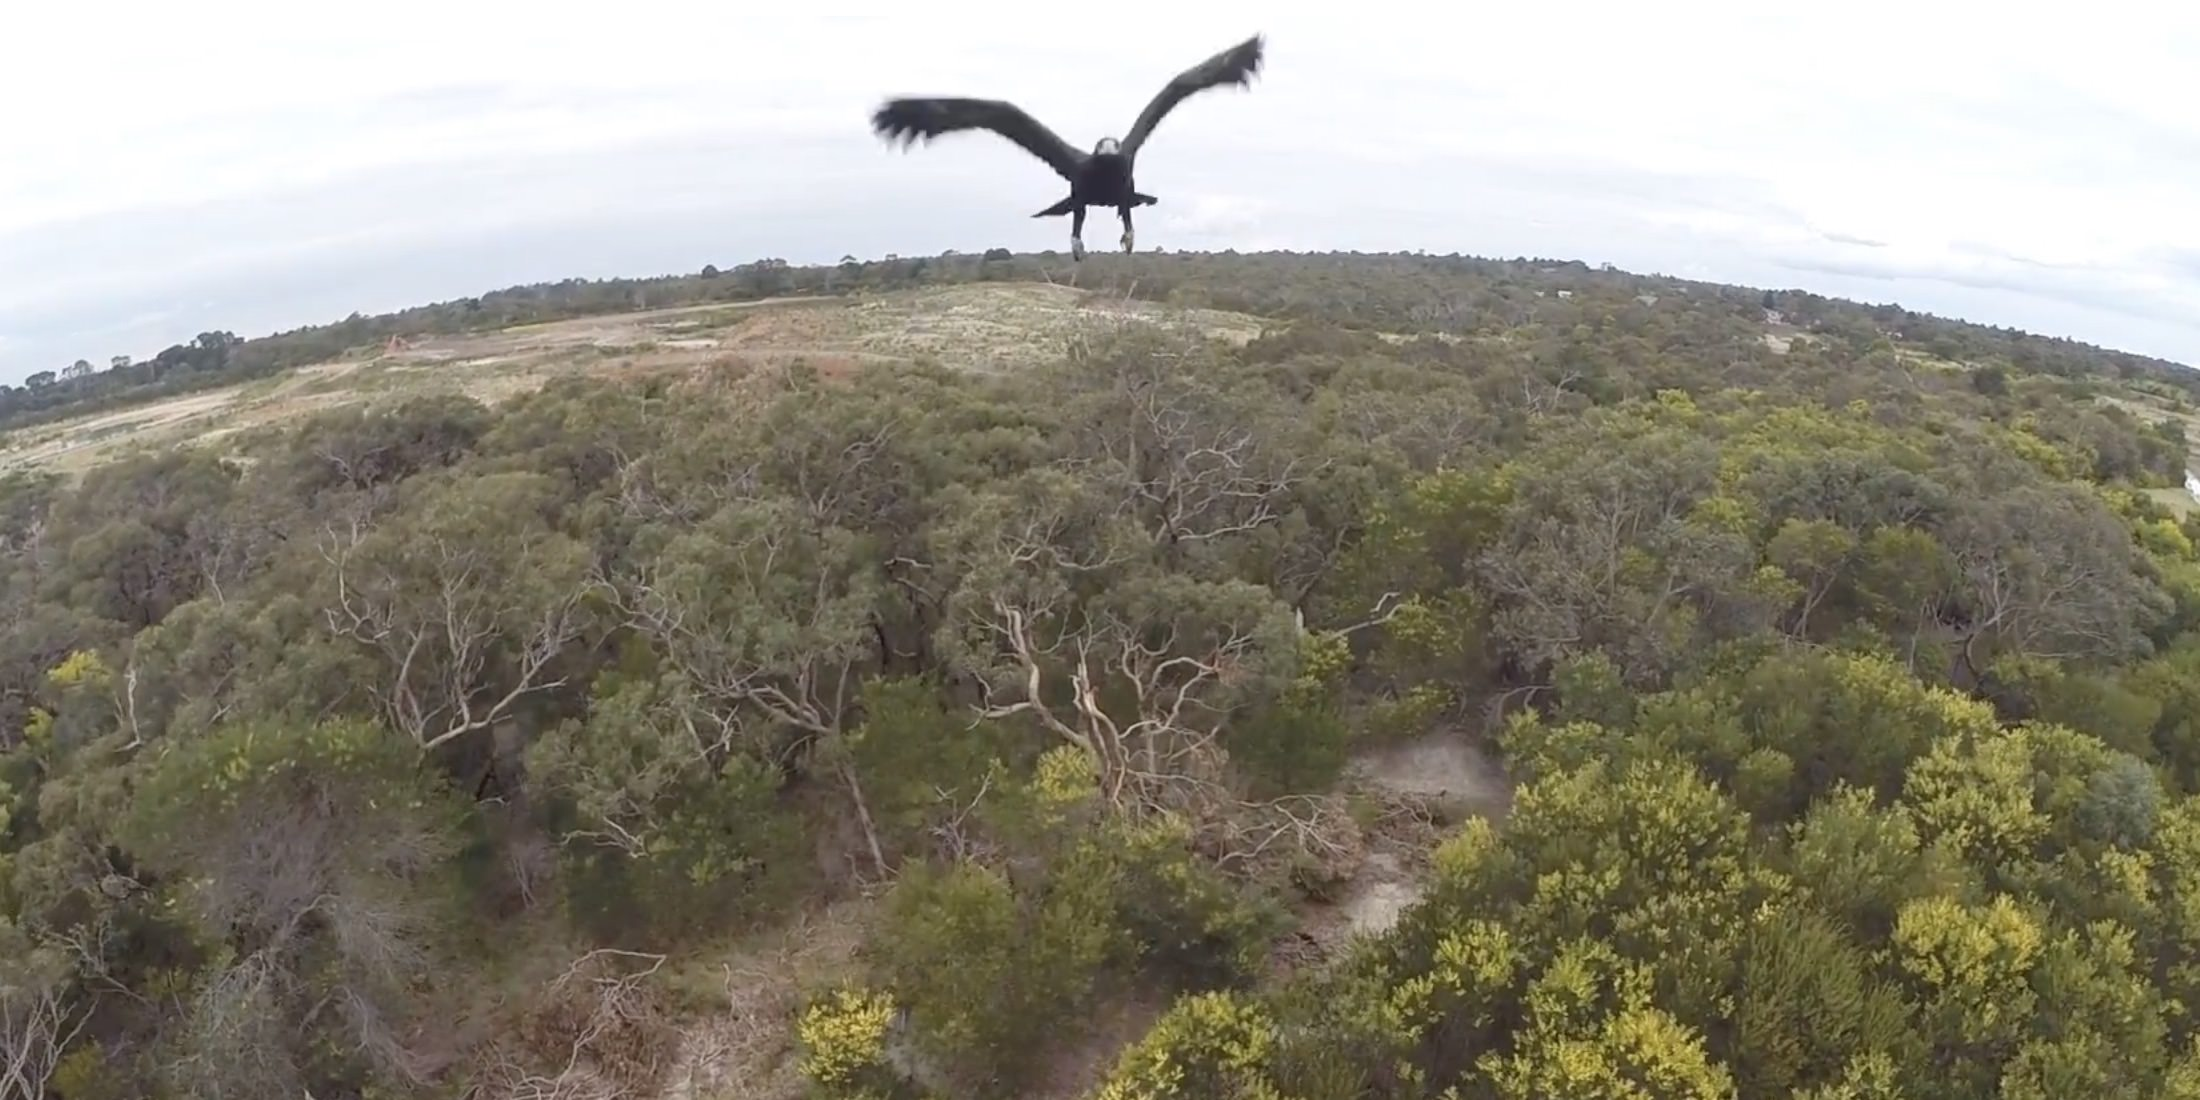 $80,000 drones ripped out of the sky by Australian wedge-tailed